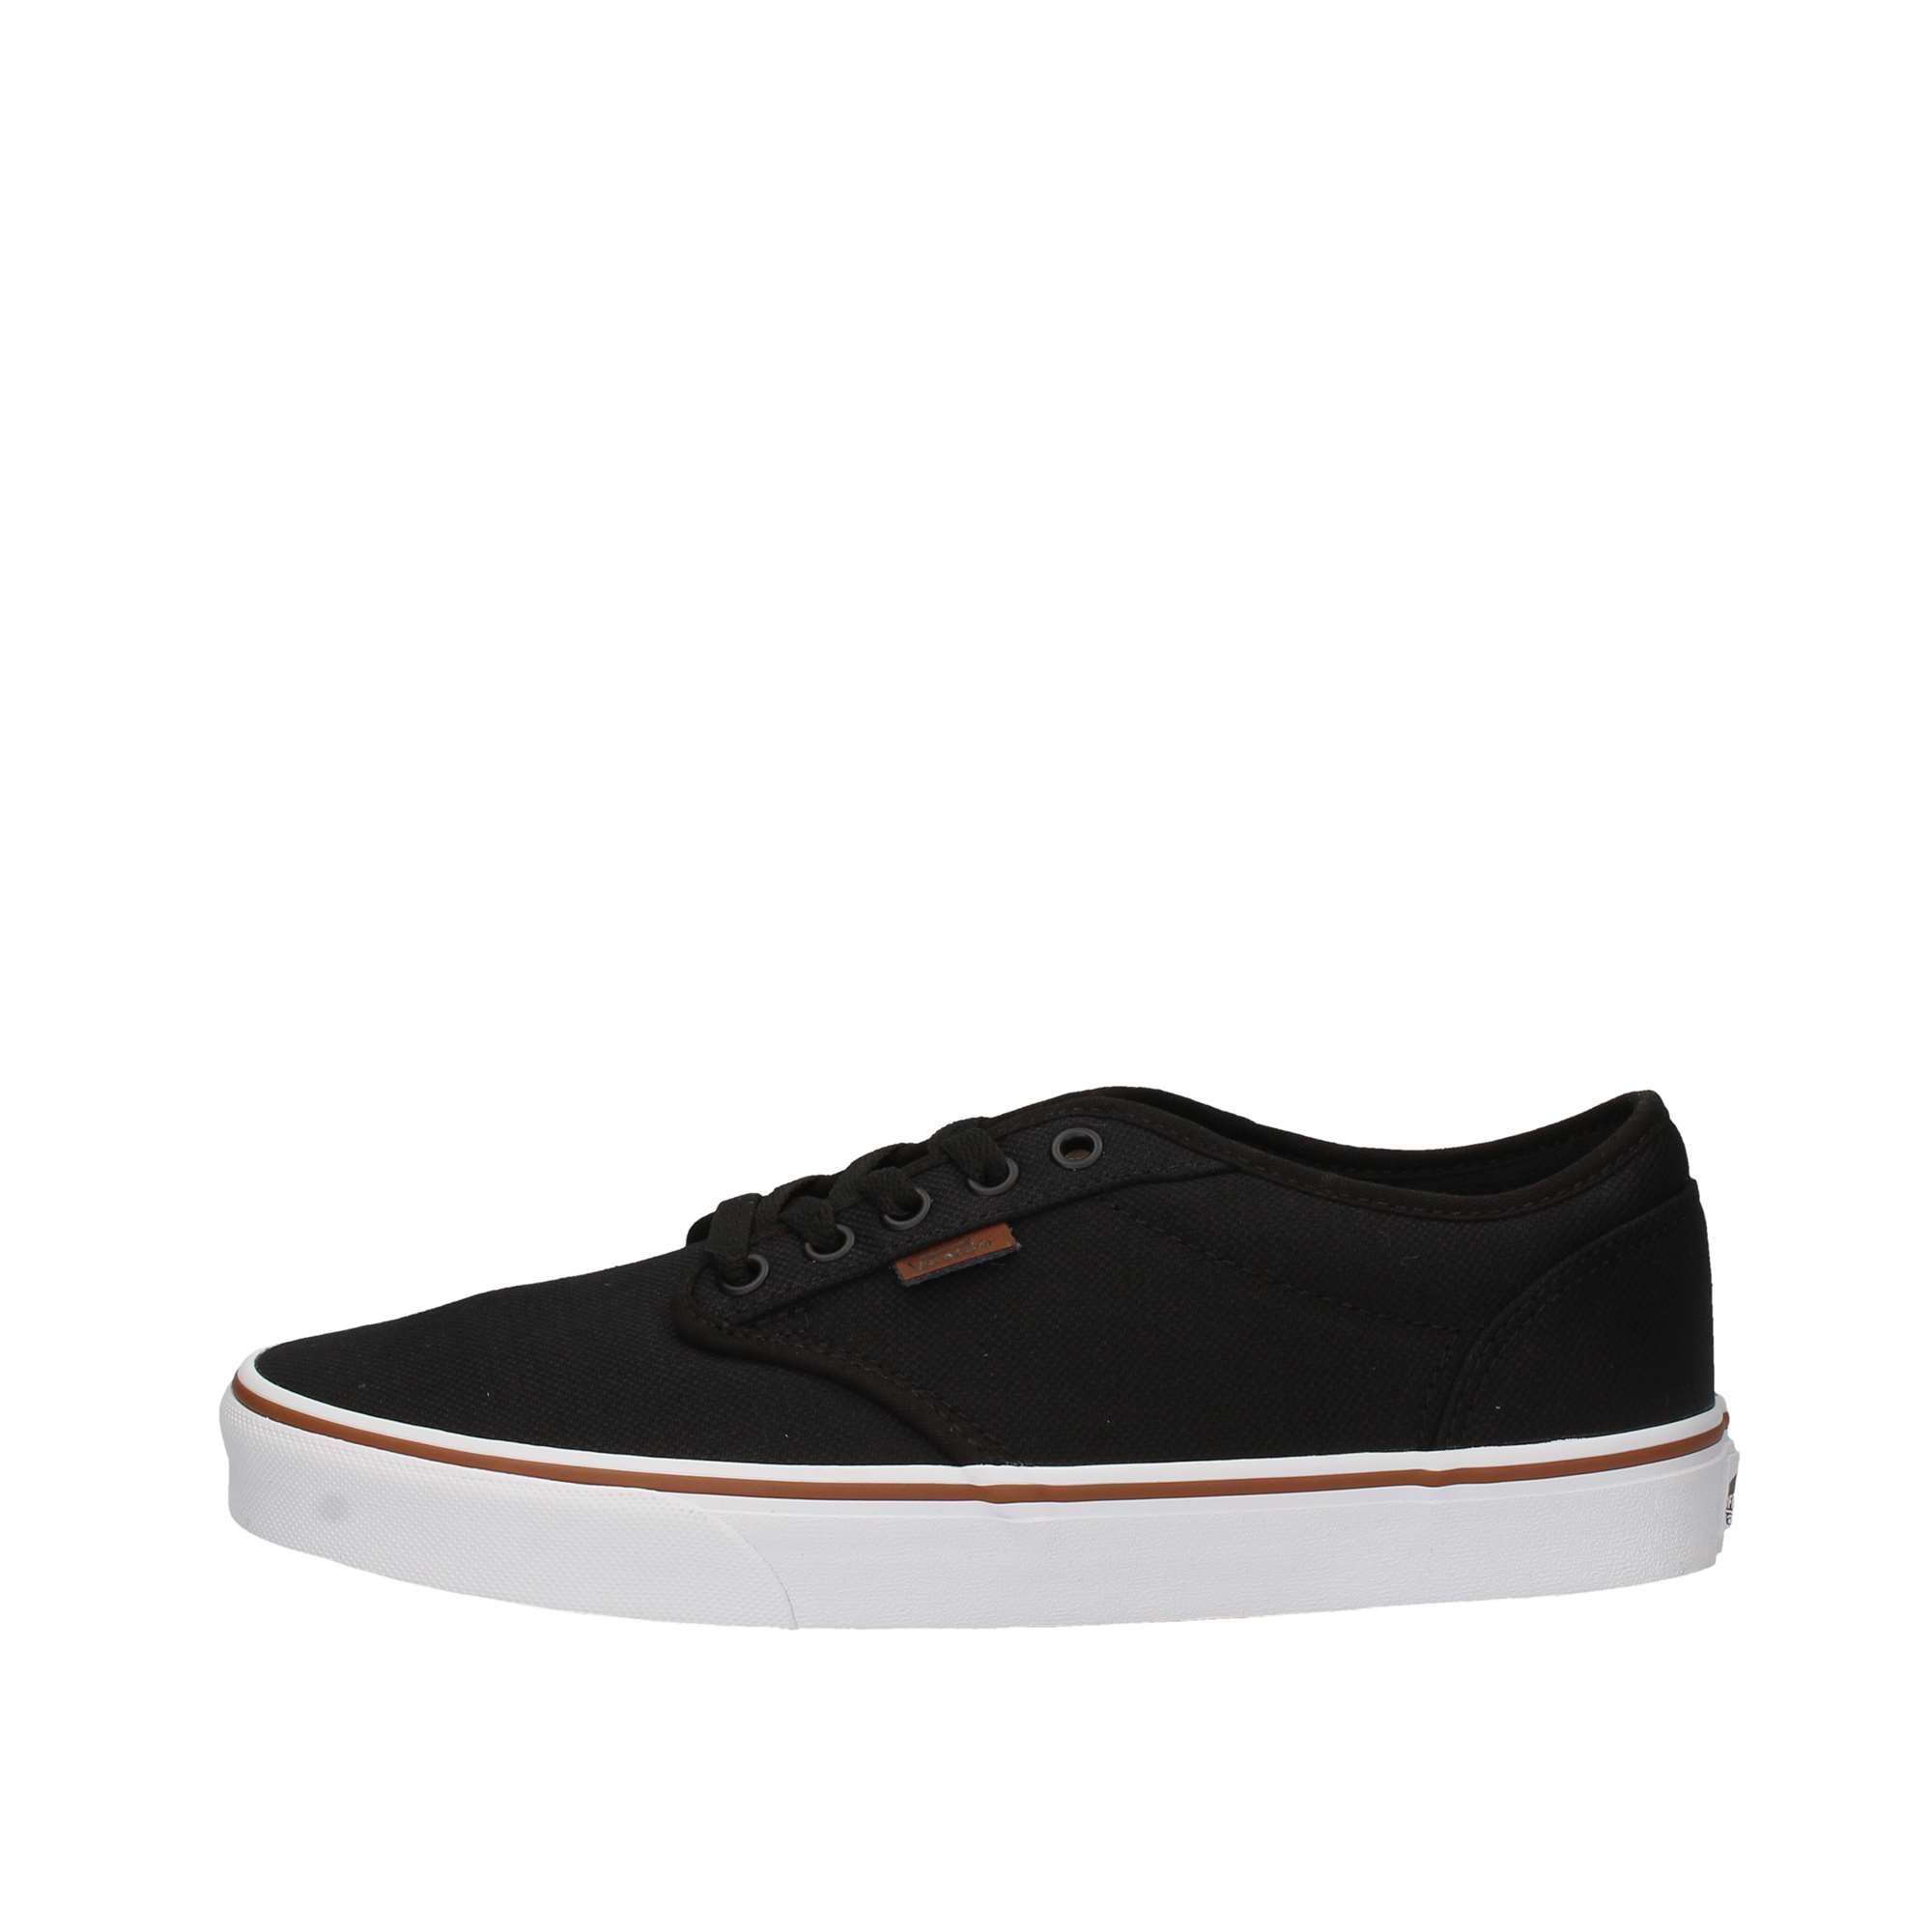 SNEAKERS Uomo VANS VN0 0015GQ1T Primavera/Estate